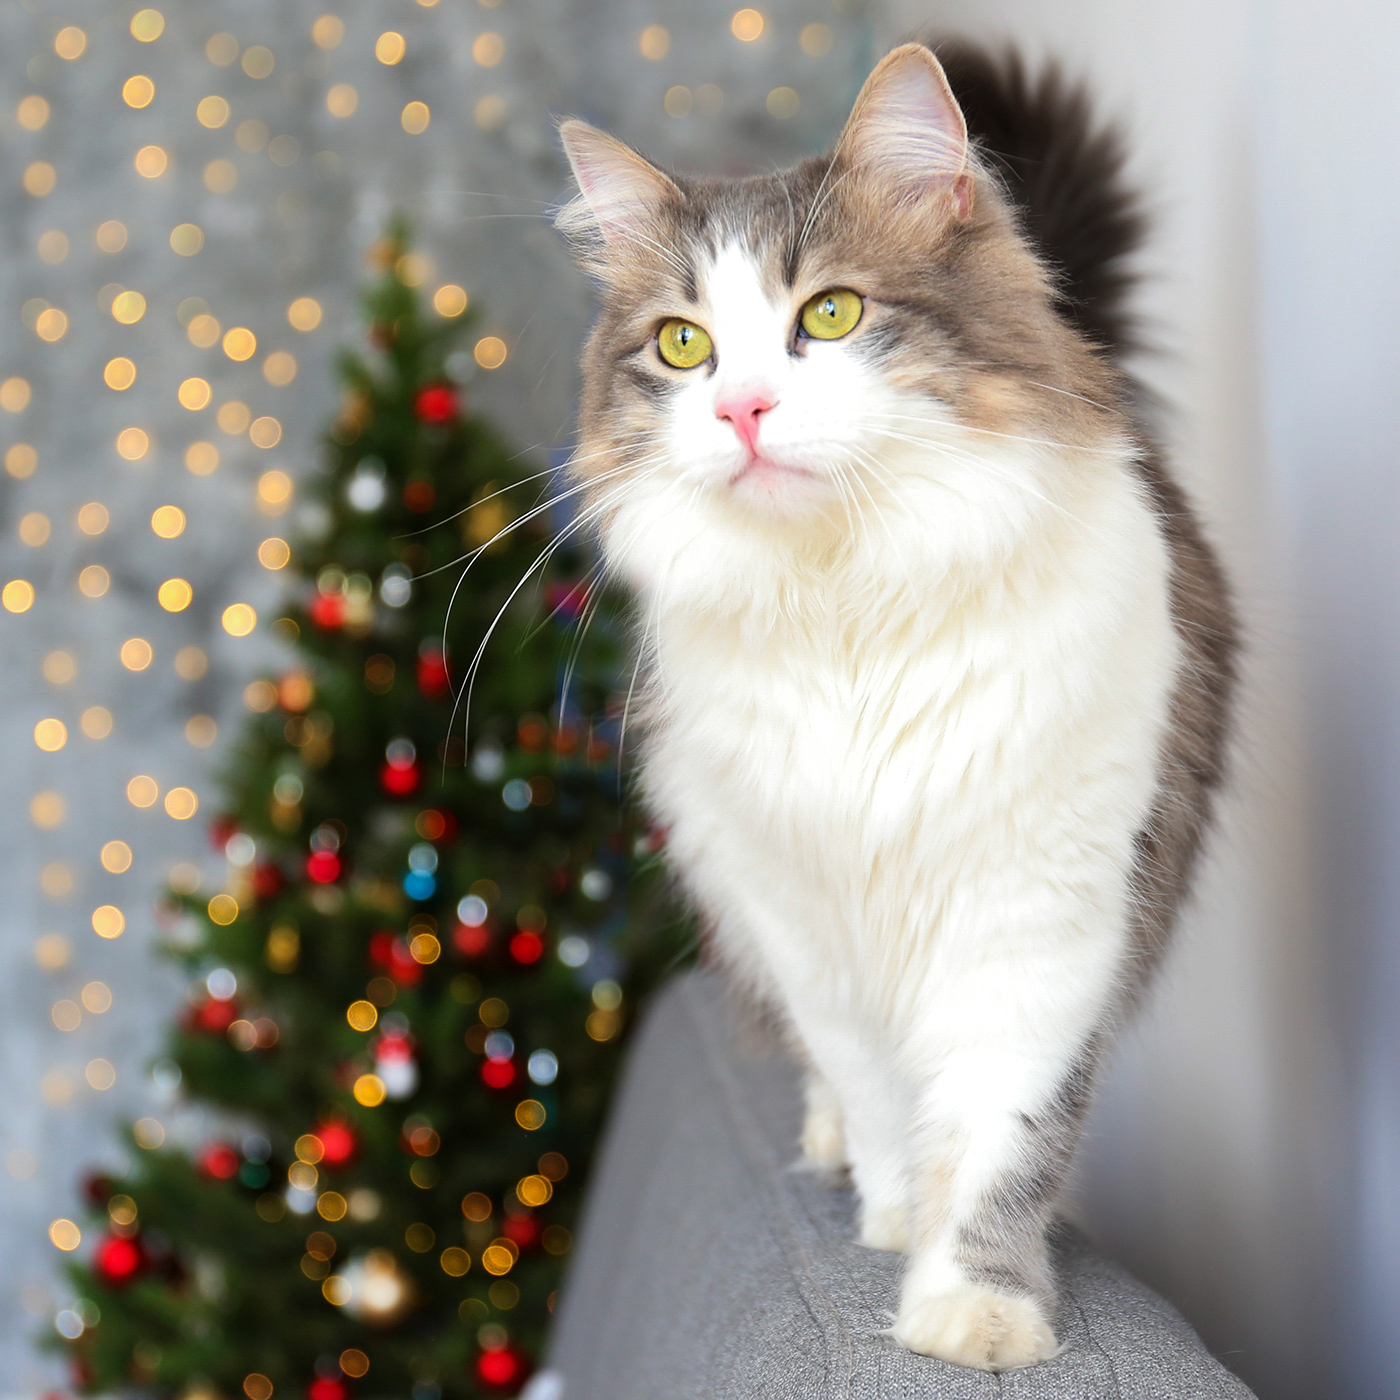 ragamuffin cat walking along back of couch with christmas tree in background